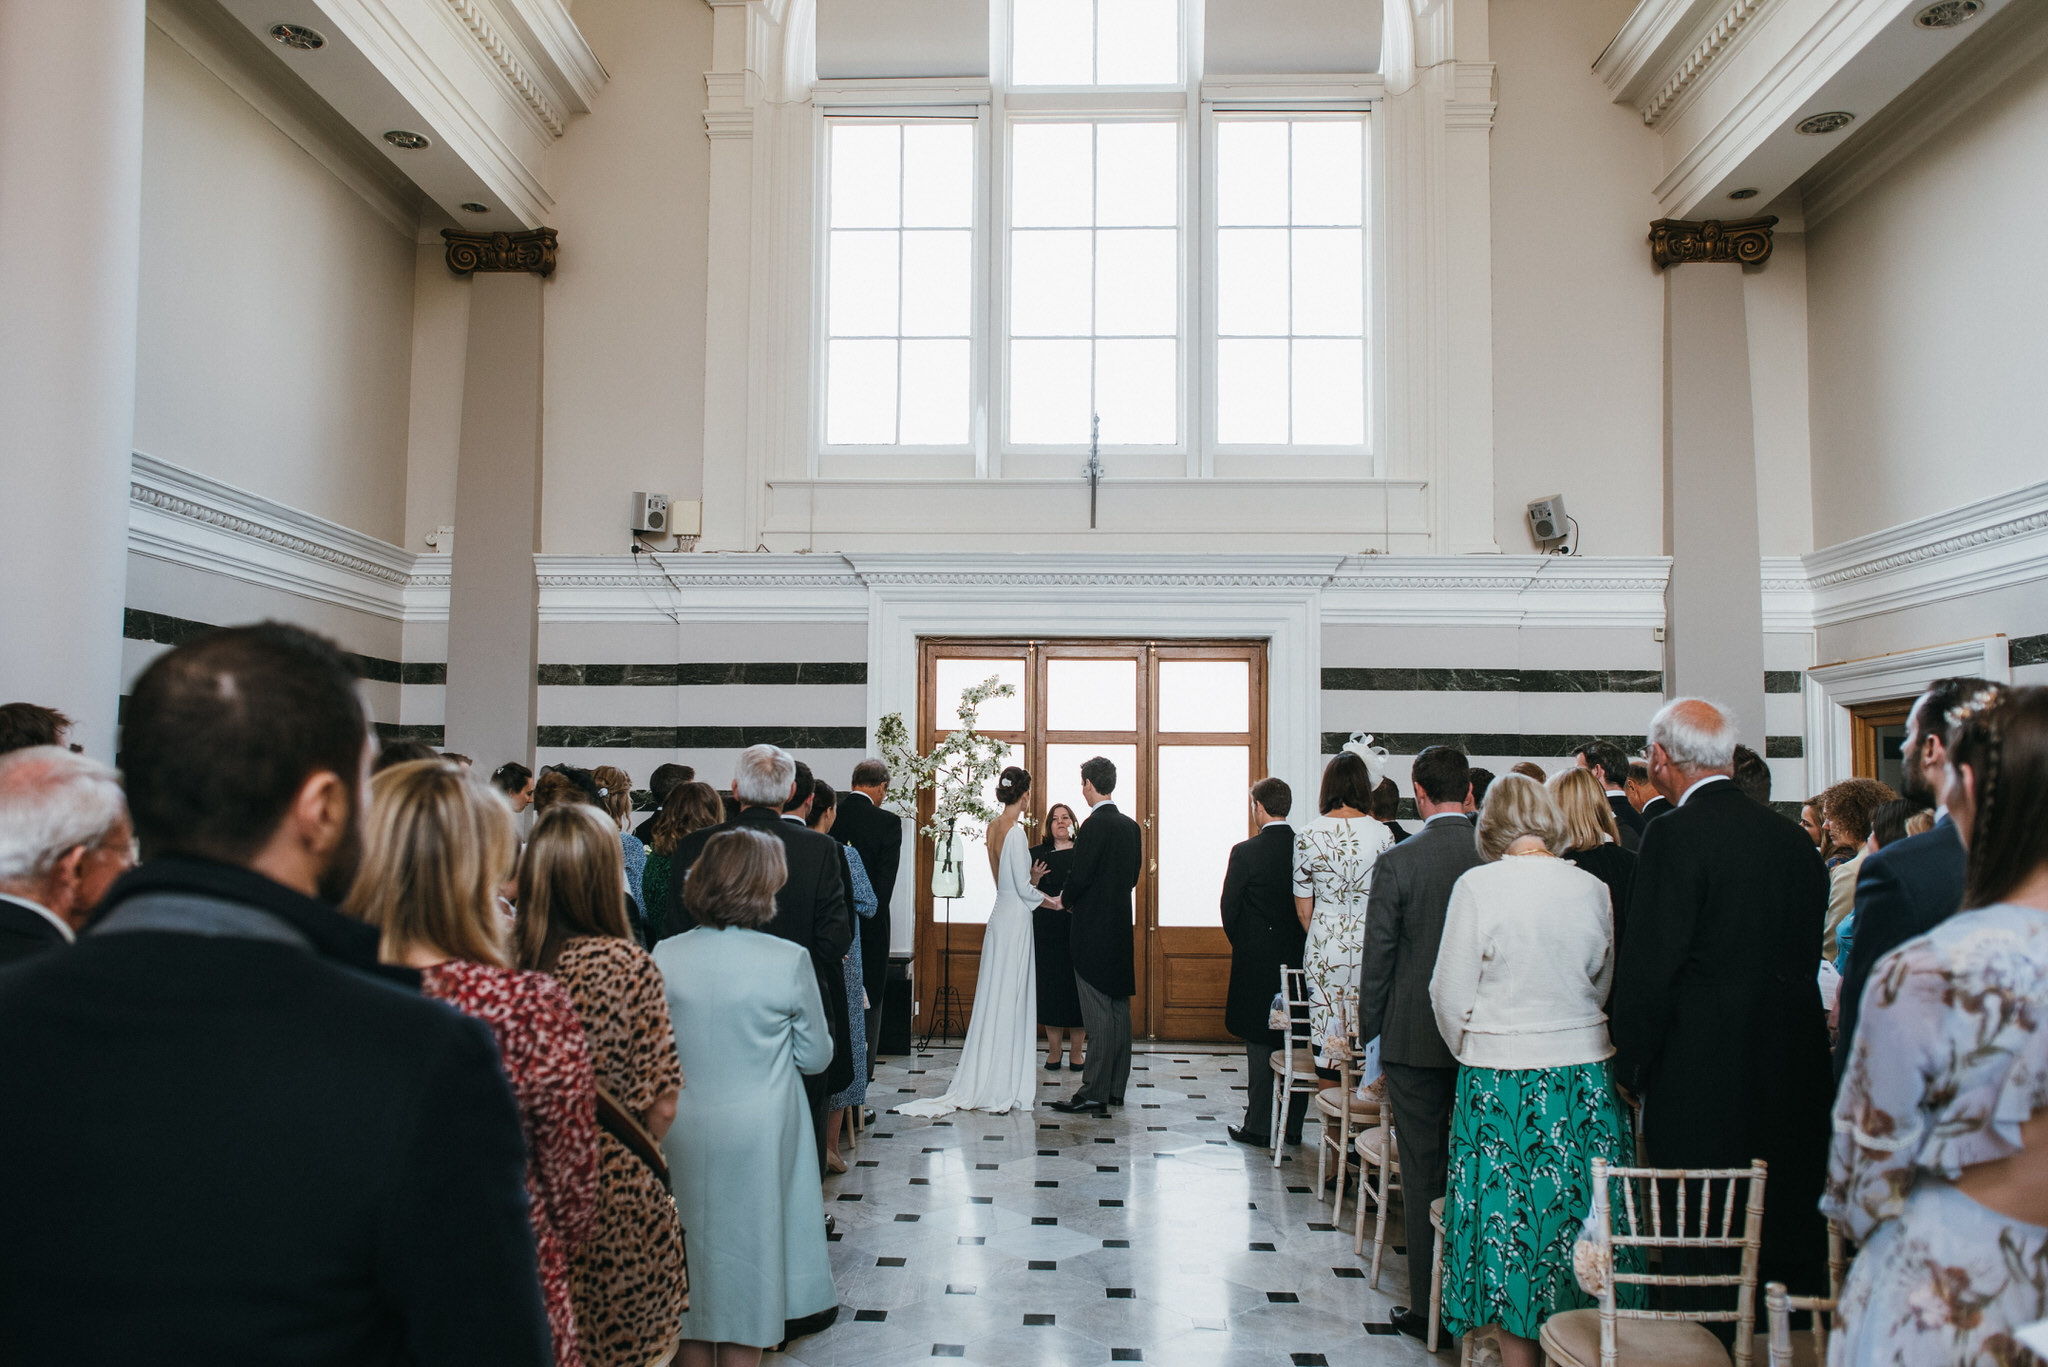 Sunbeam studios wedding ceremony